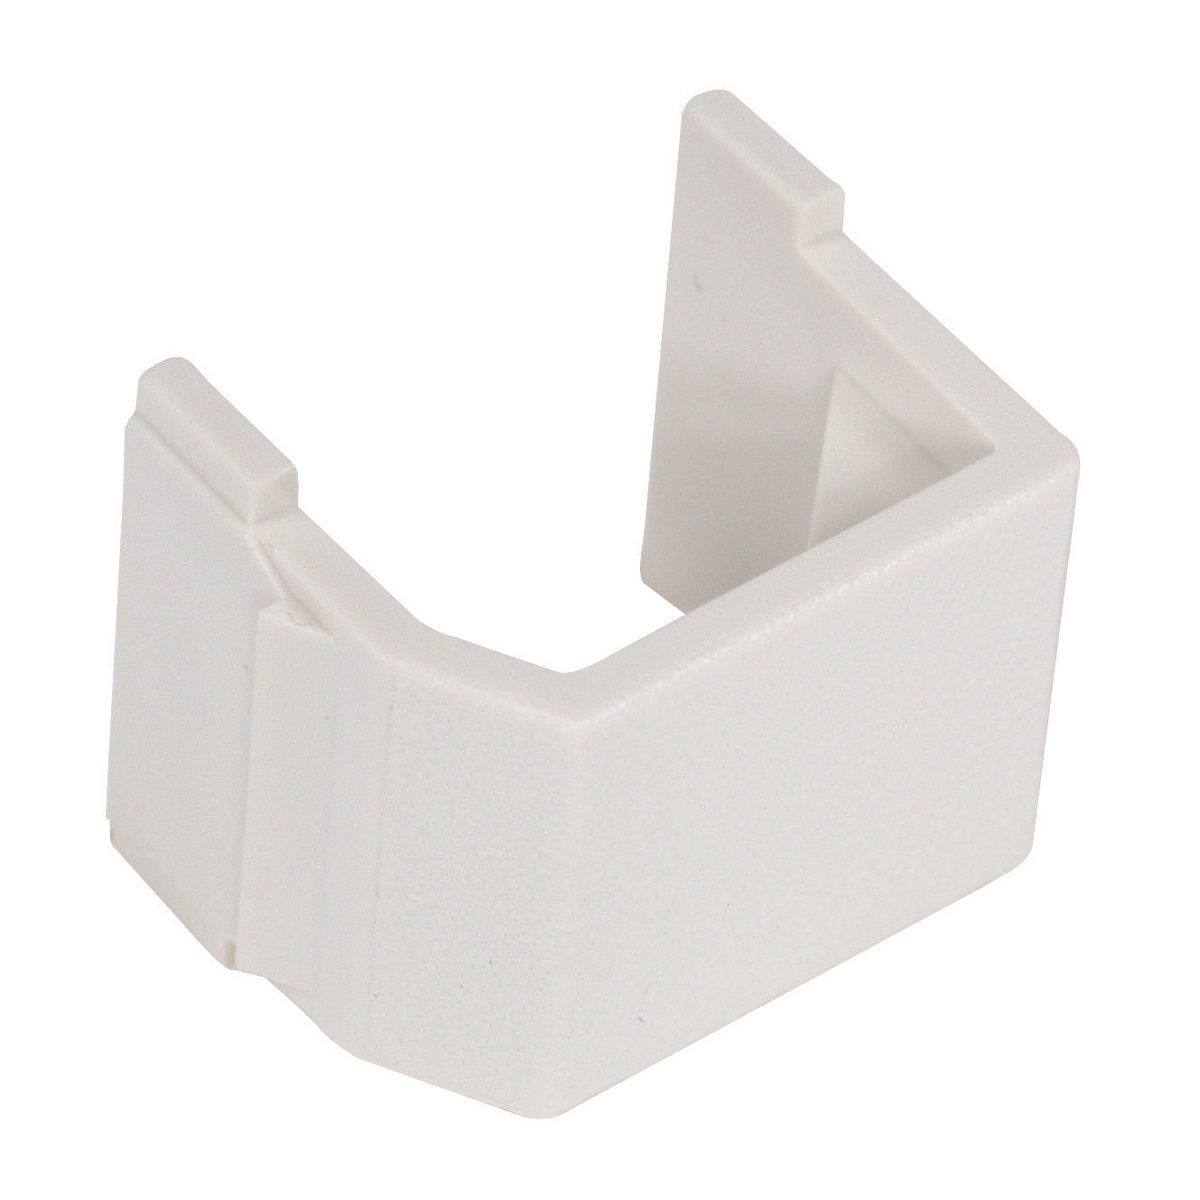 Hubbell SFB10 Blank Office White Snap-Fit Modular Connector